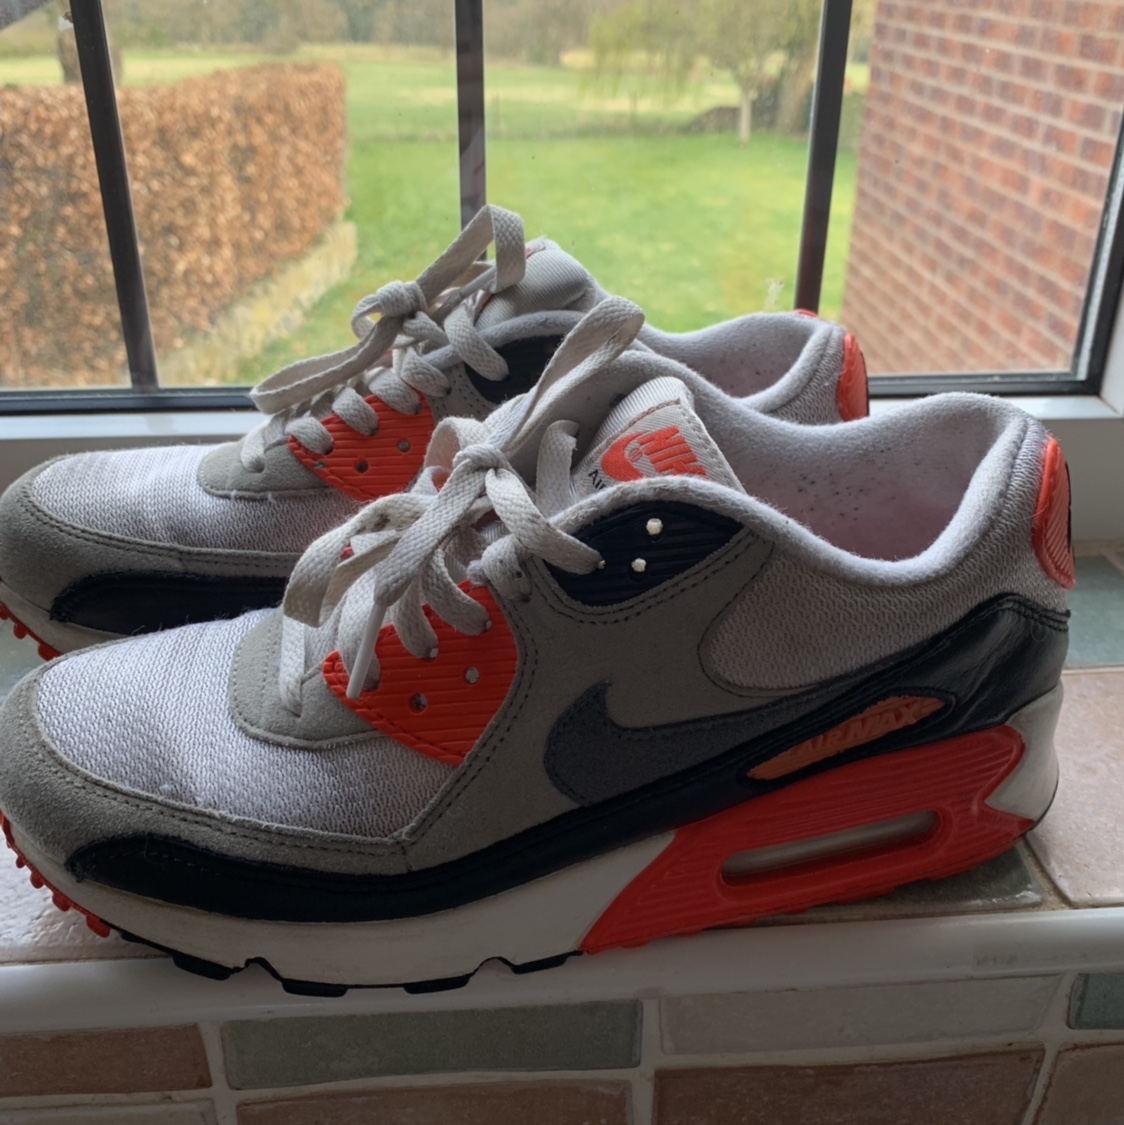 Nike Air max 90 infrared size 5.5. Worn a hand full...